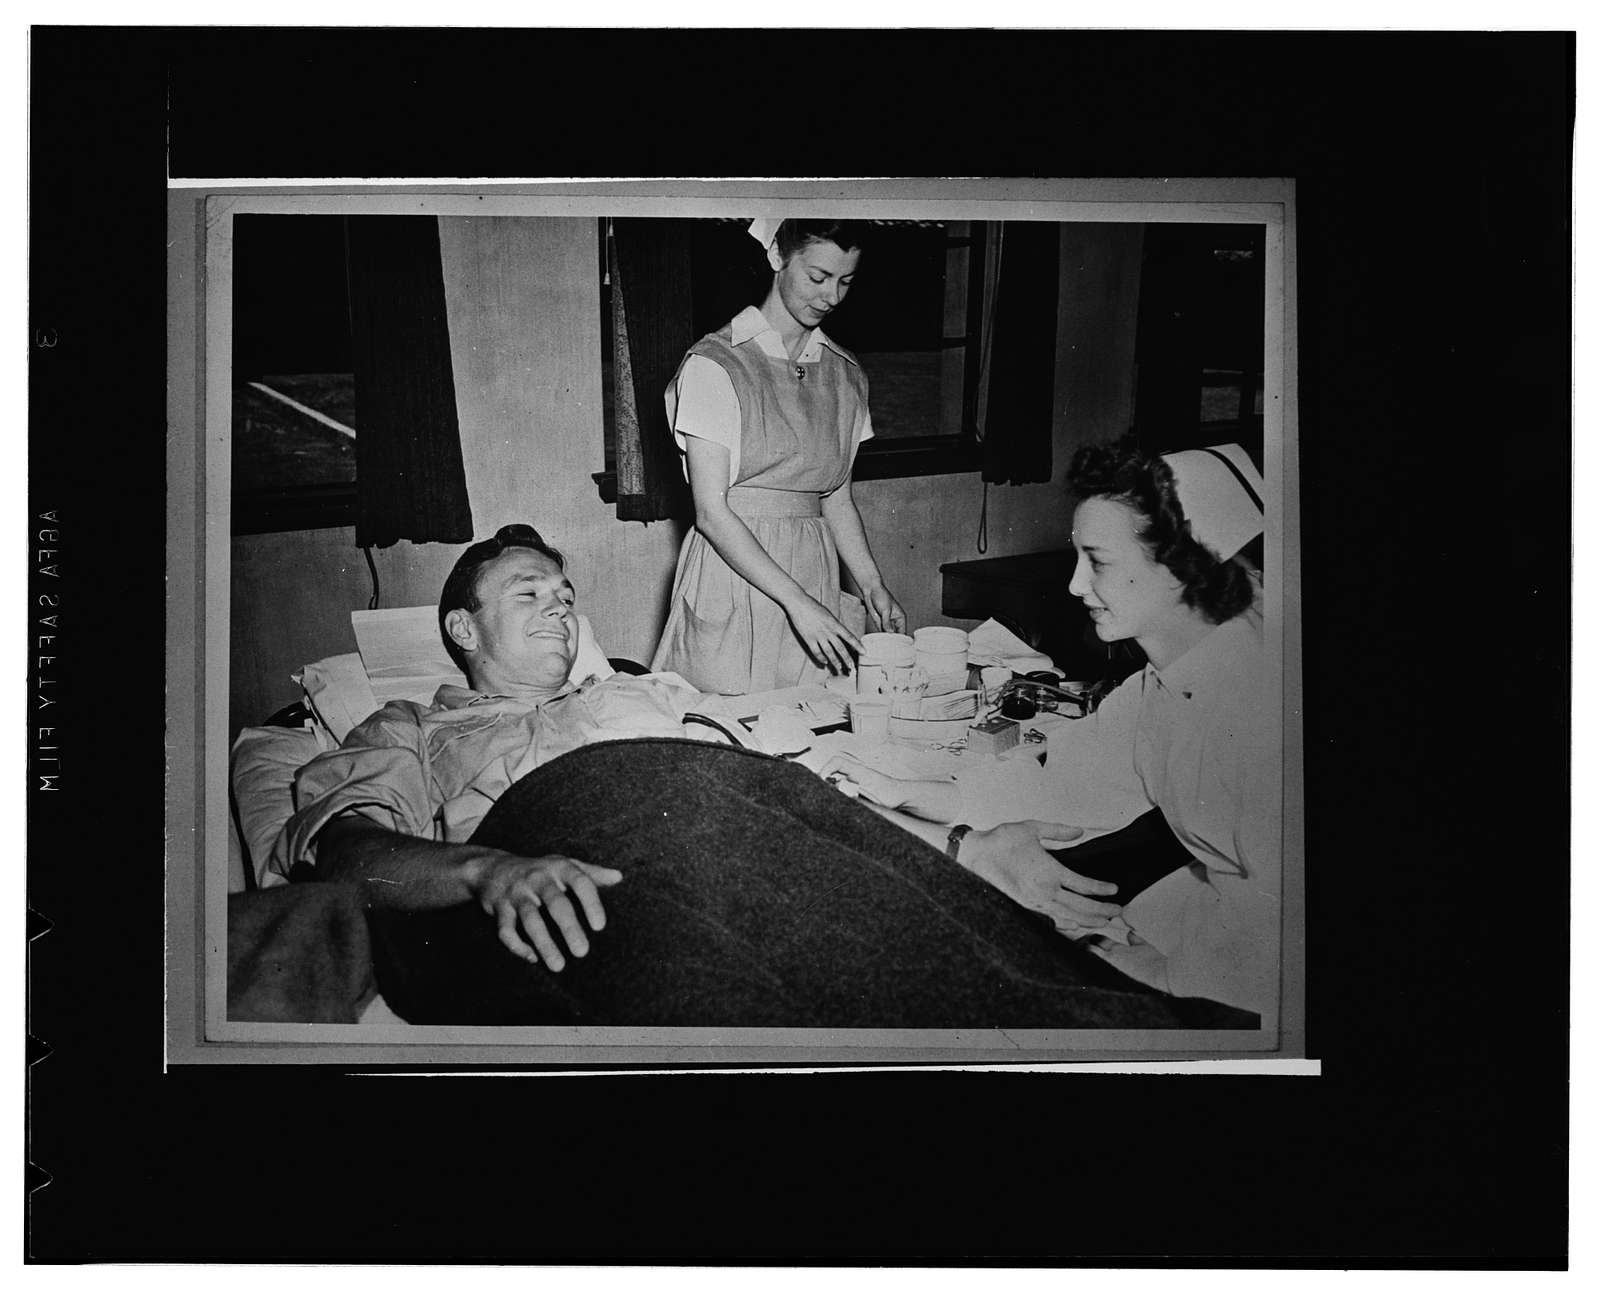 Palo Alto, California. Frankie Albert, Stanford's All-American quarterback, and two nurses. He was one of the first to make an appointment to give his blood to the Red Cross blood donor service when the mobile unit visited Palo Alto